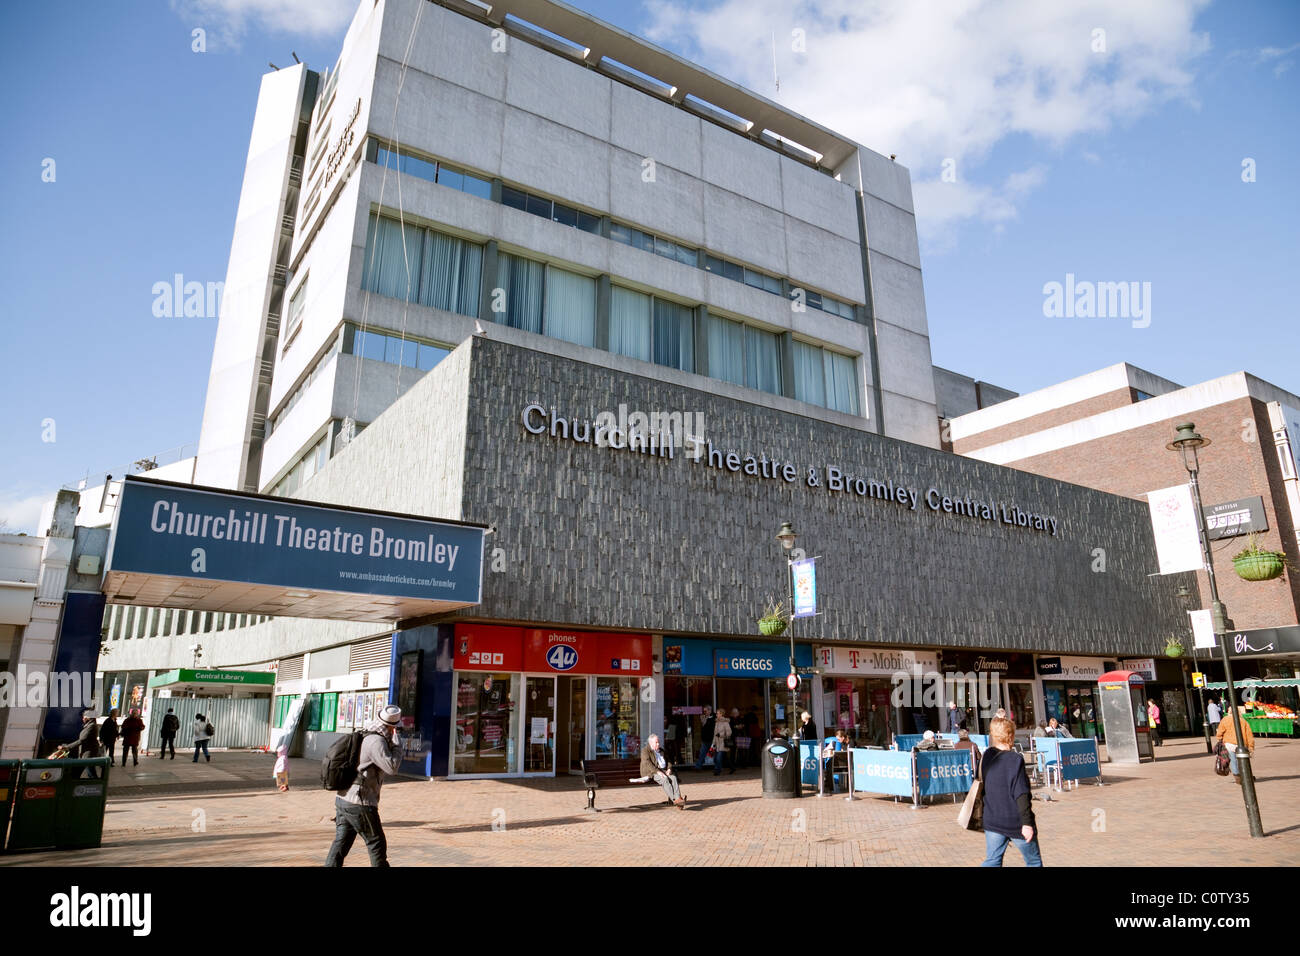 The Churchill Theatre, Bromley High Street, Bromley, Kent UK - Stock Image